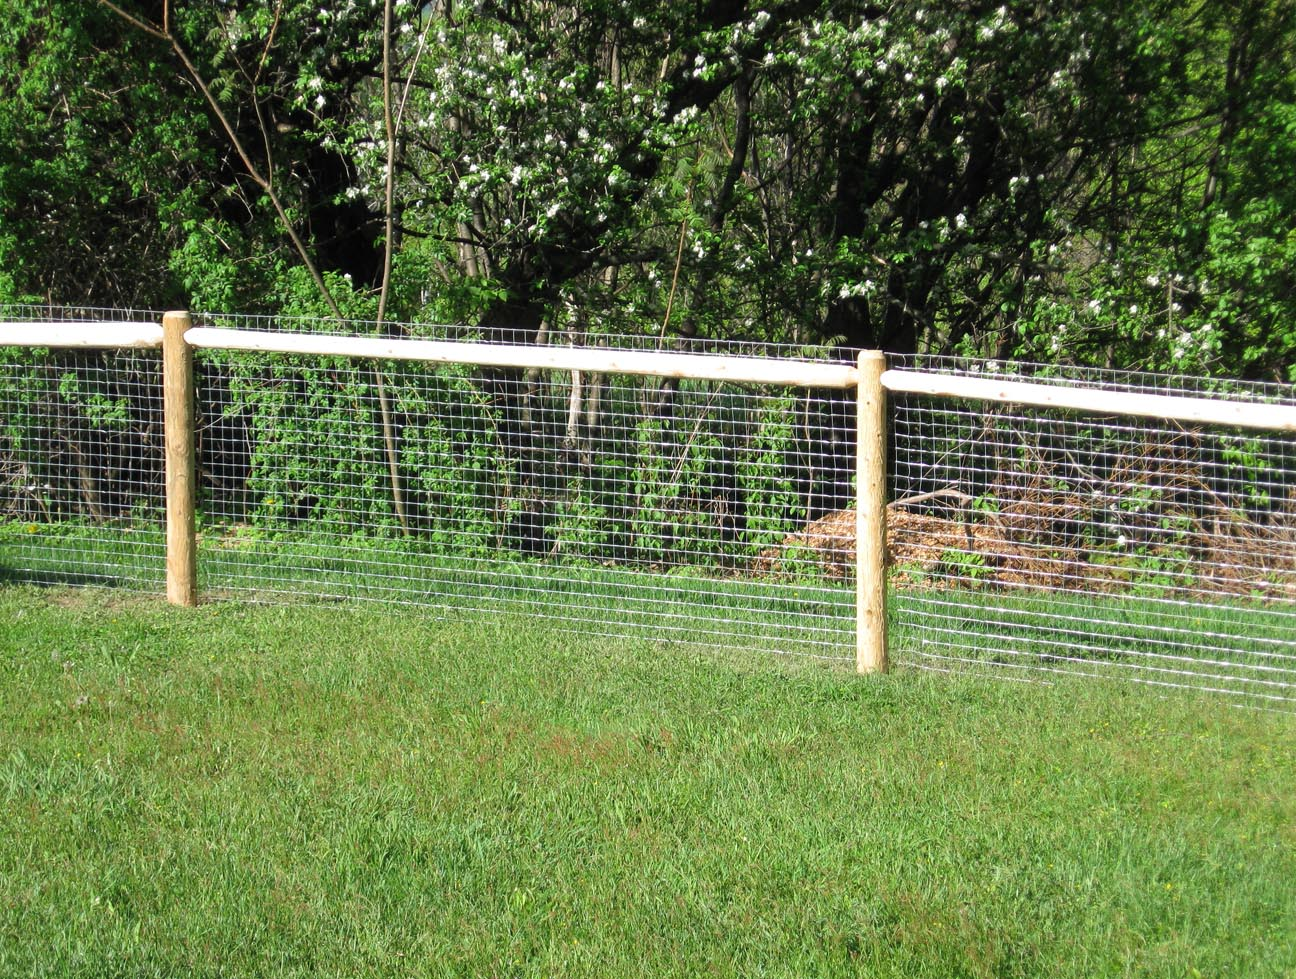 Cheap Fence Ideas For Dogs In Diy Reusable And Portable - Portable Fence